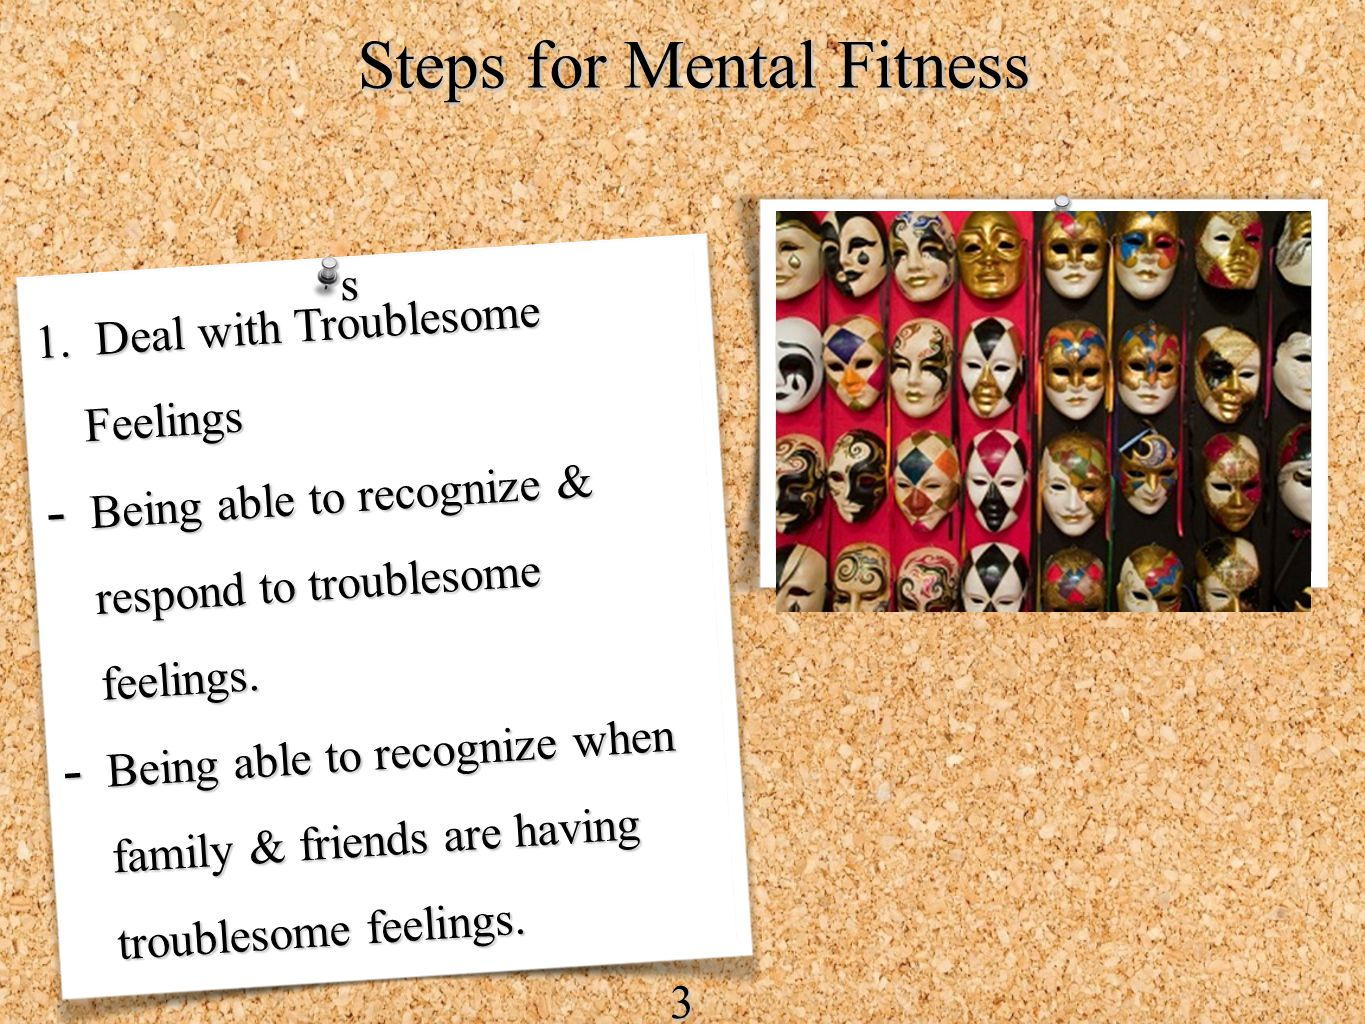 Steps for Mental Fitness